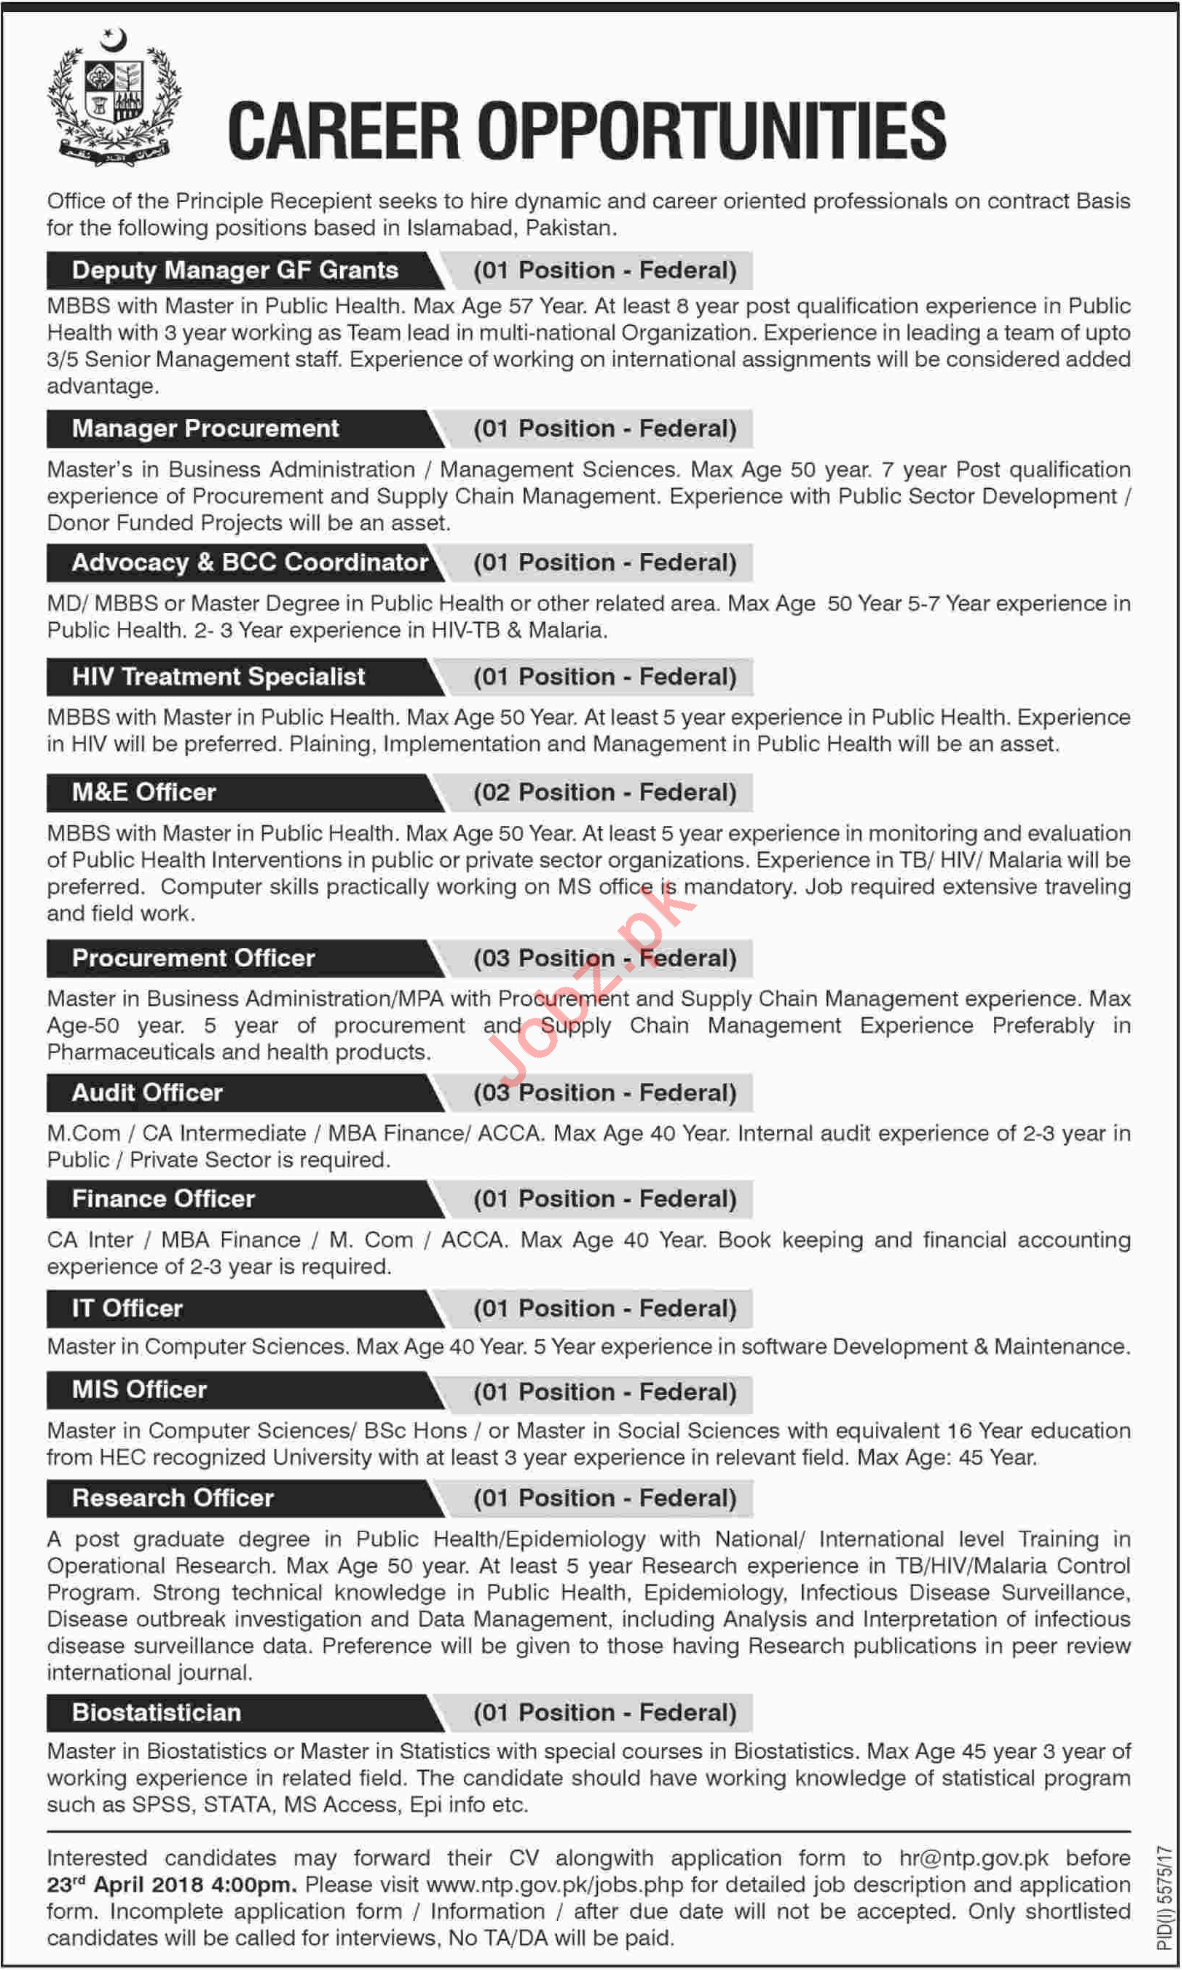 National TB Control Program NTP Job Opportunities